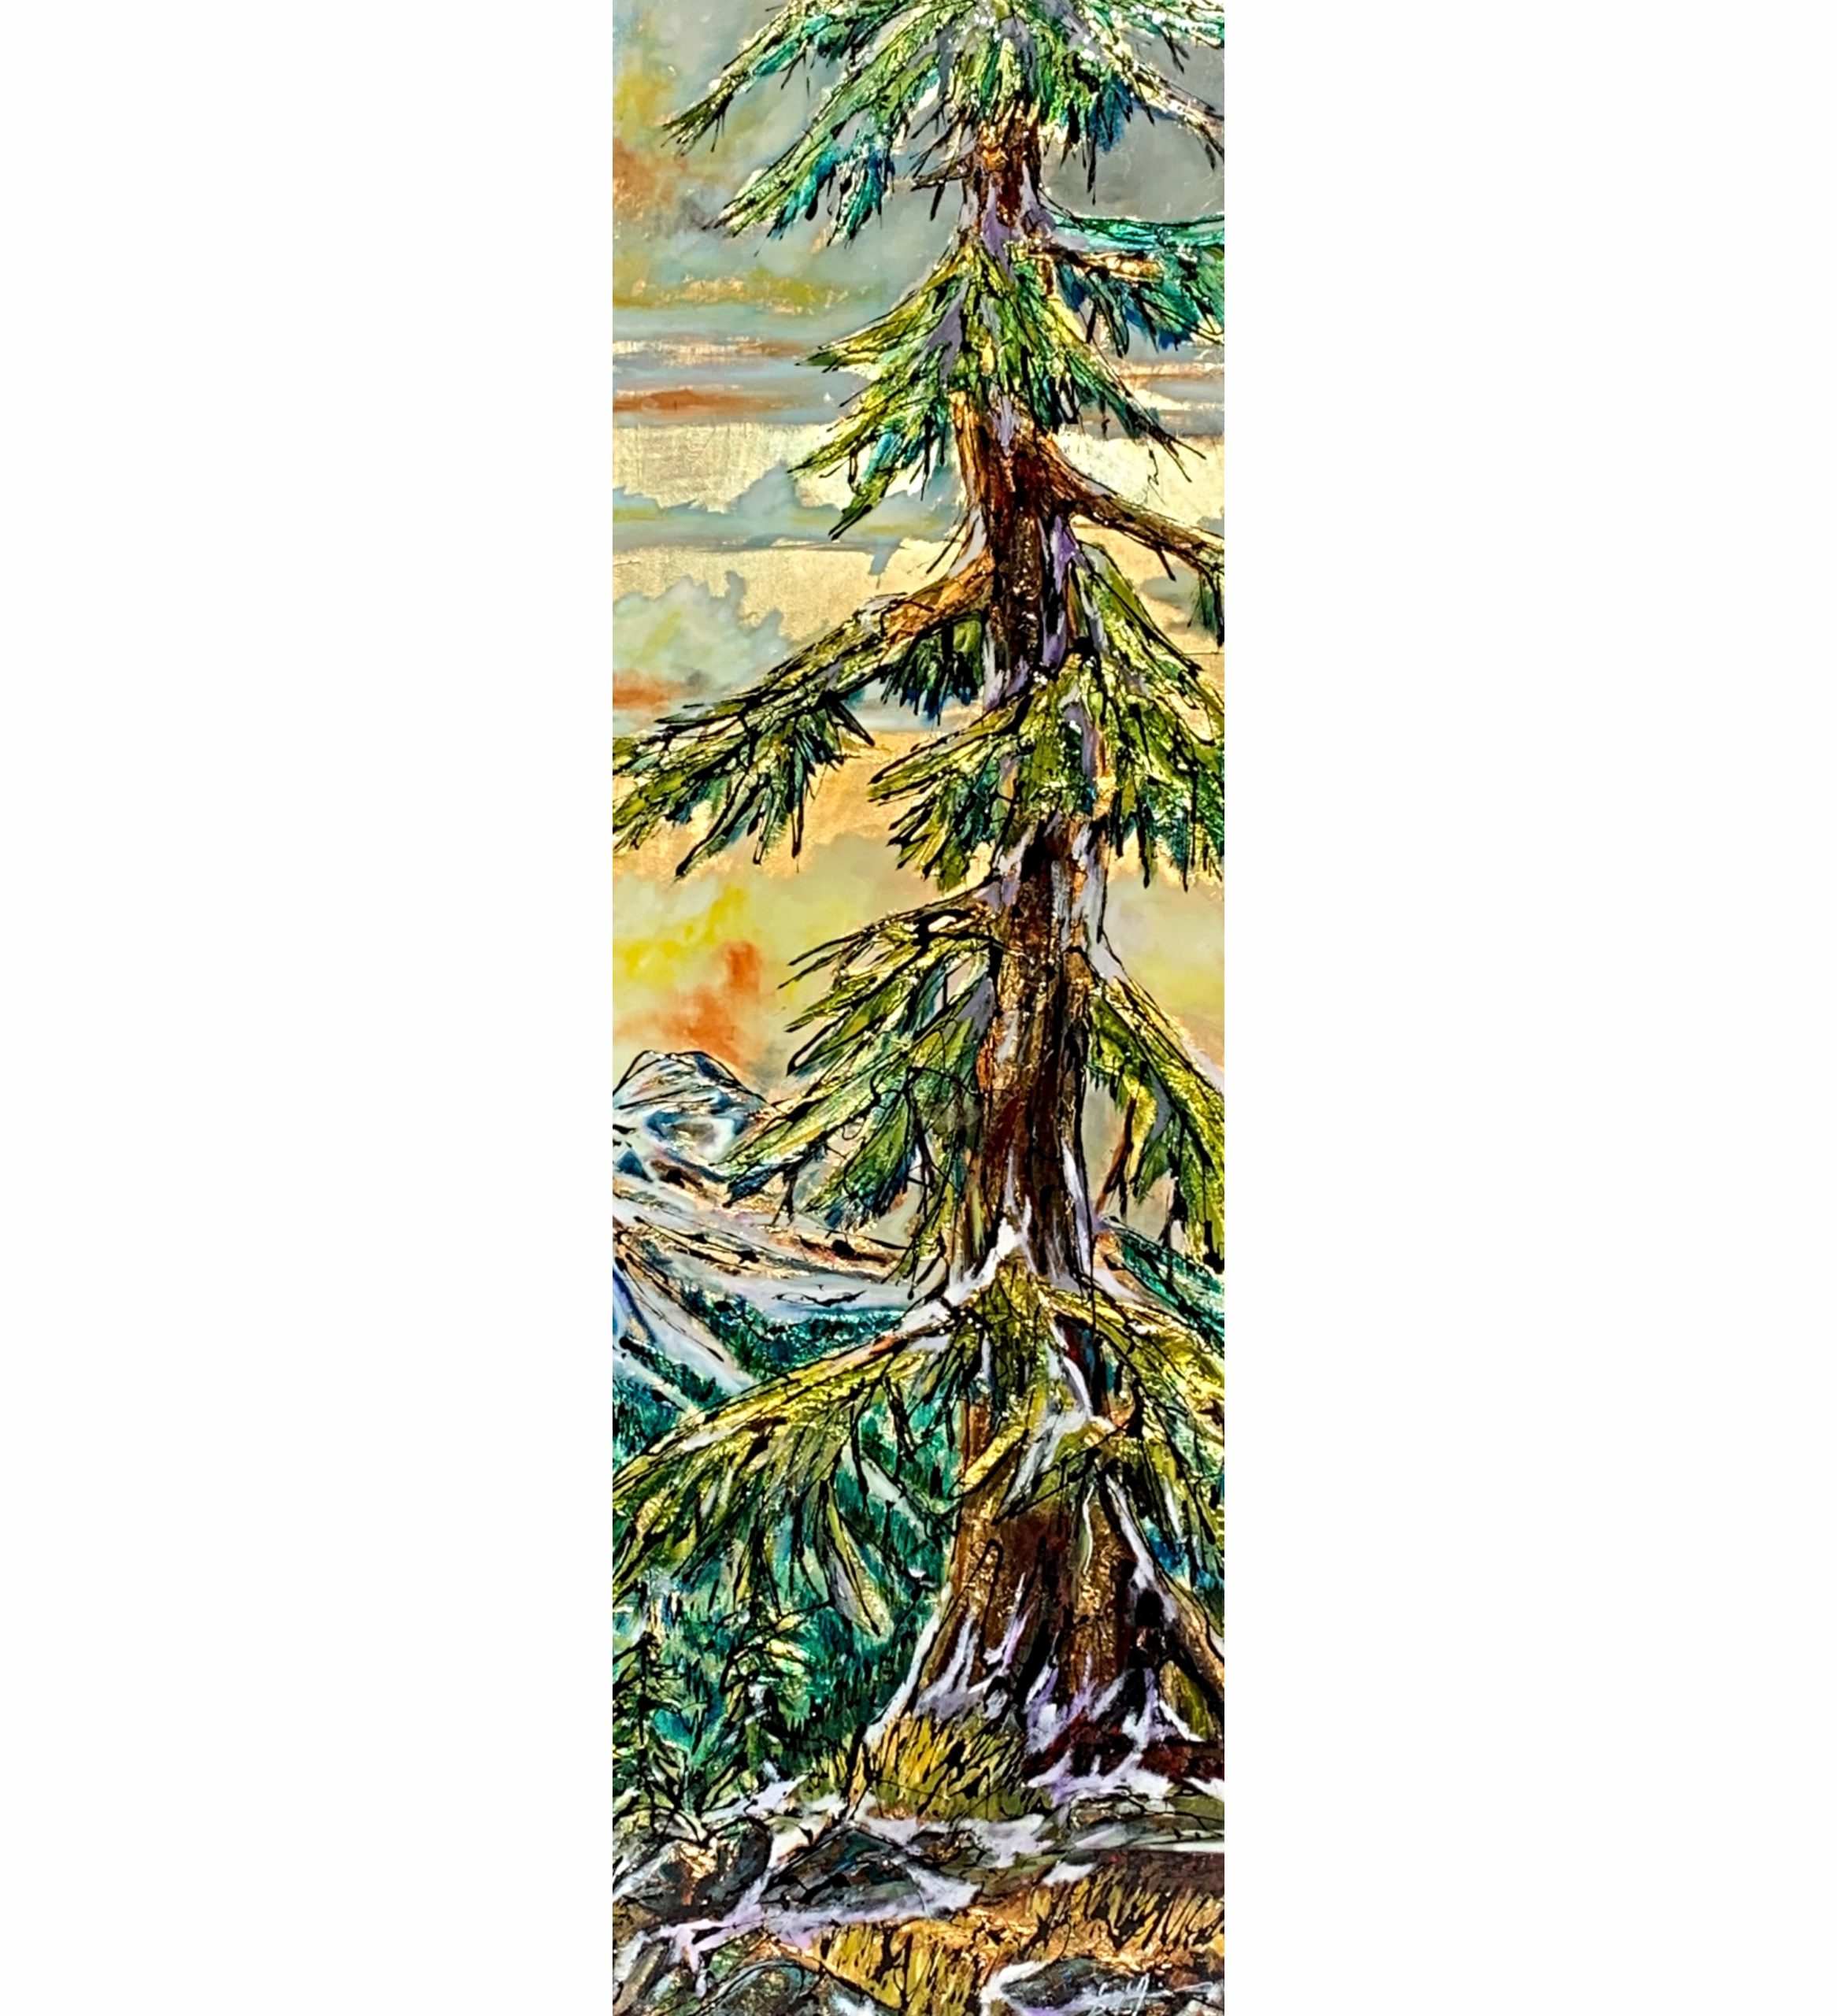 Where do I Fit, mixed media tree painting by David Zimmerman  | Effusion Art Gallery + Cast Glass Studio, Invermere BC